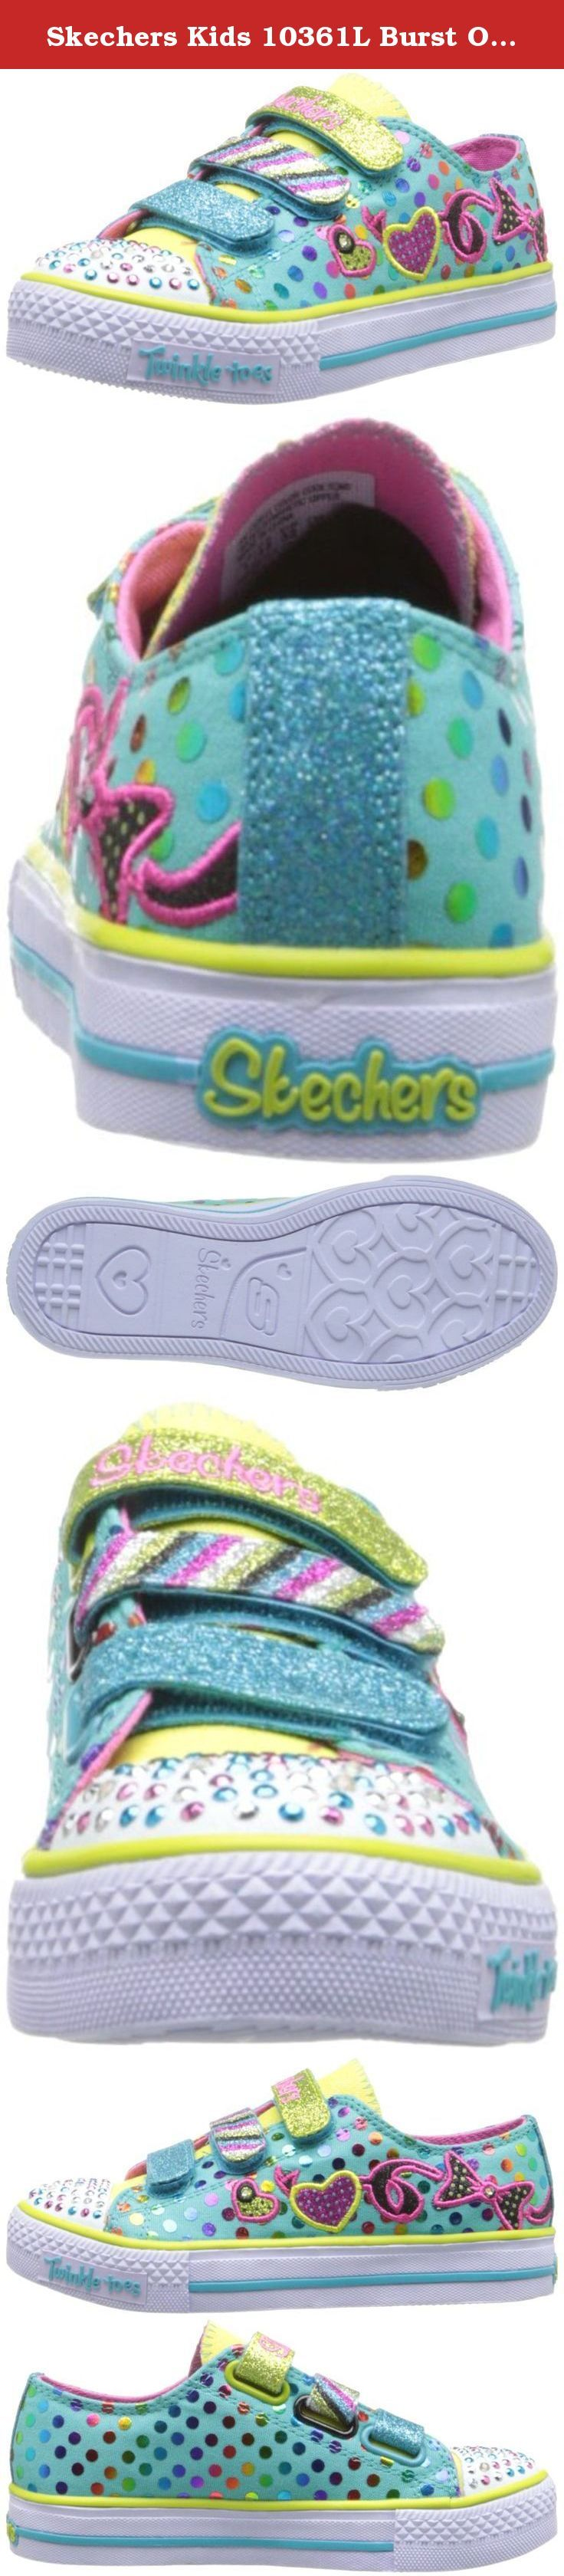 Skechers Kids 10361L Burst O' Fun Light-Up Sneaker (Little Kid). Girl's Skechers, S Lights Shuffles Burst O Fun Light Up Shoe Add a burst of flair to her look with these dazzling shoes! Fabric and manmade upper with glitter for added appeal Rubber toe cap and side features rhinestones and lights that blink with every step Three adjustable hook and loop closure straps for an easy on and off Fabric lining with a cushioned footbed for added comfort Shock absorbing midsole with a rubber outsole.